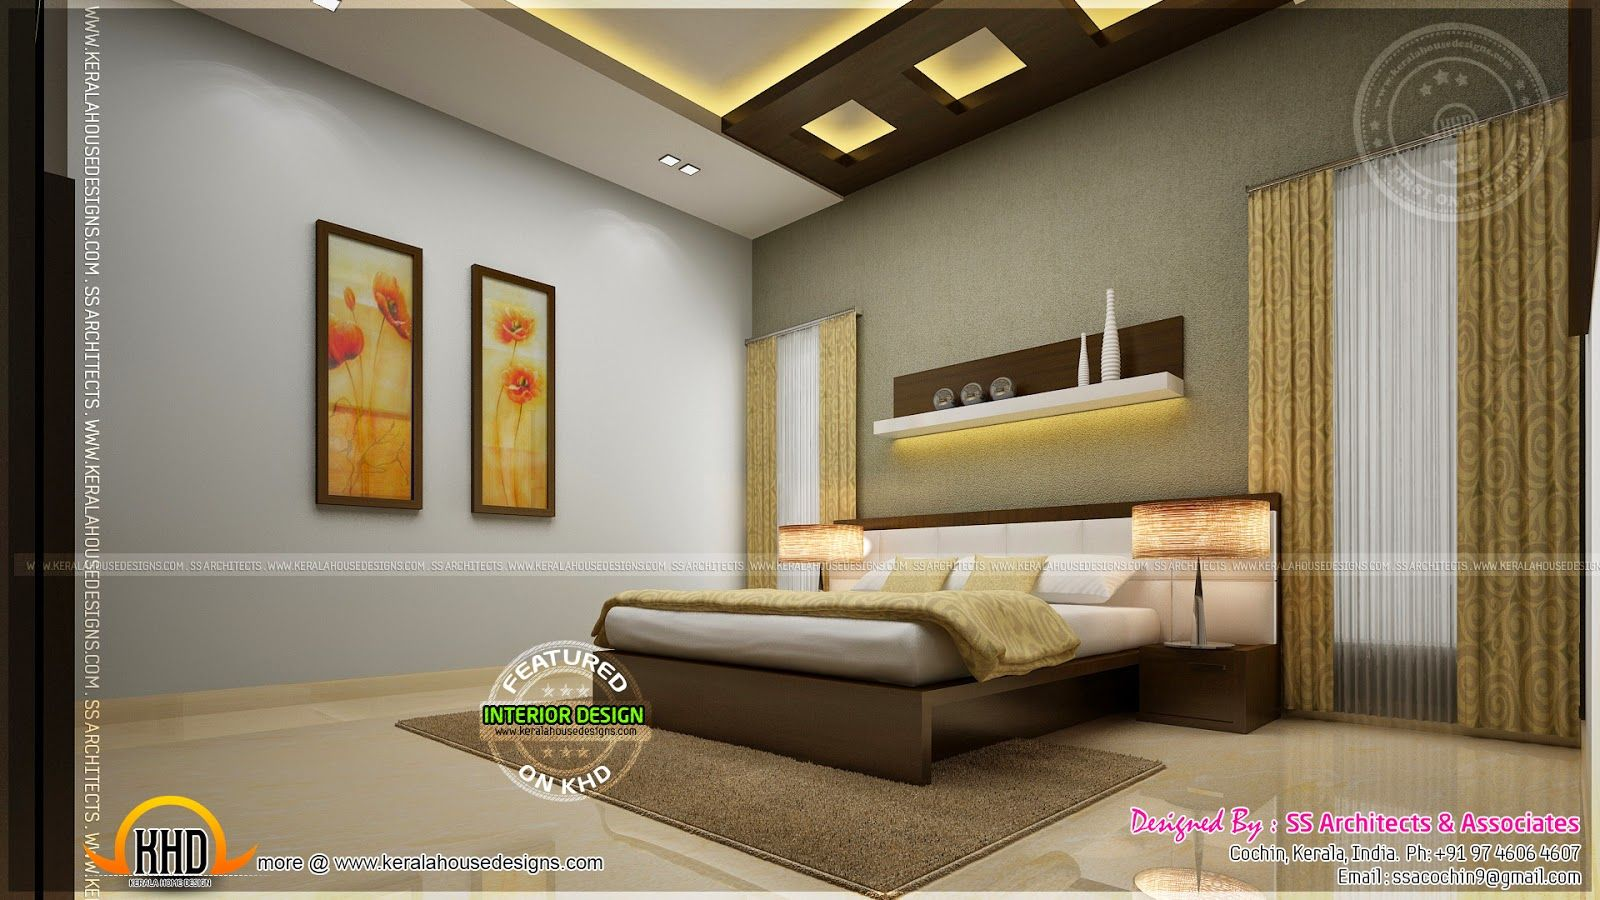 Indian master bedroom interior design google search for Simple interior design ideas for indian homes